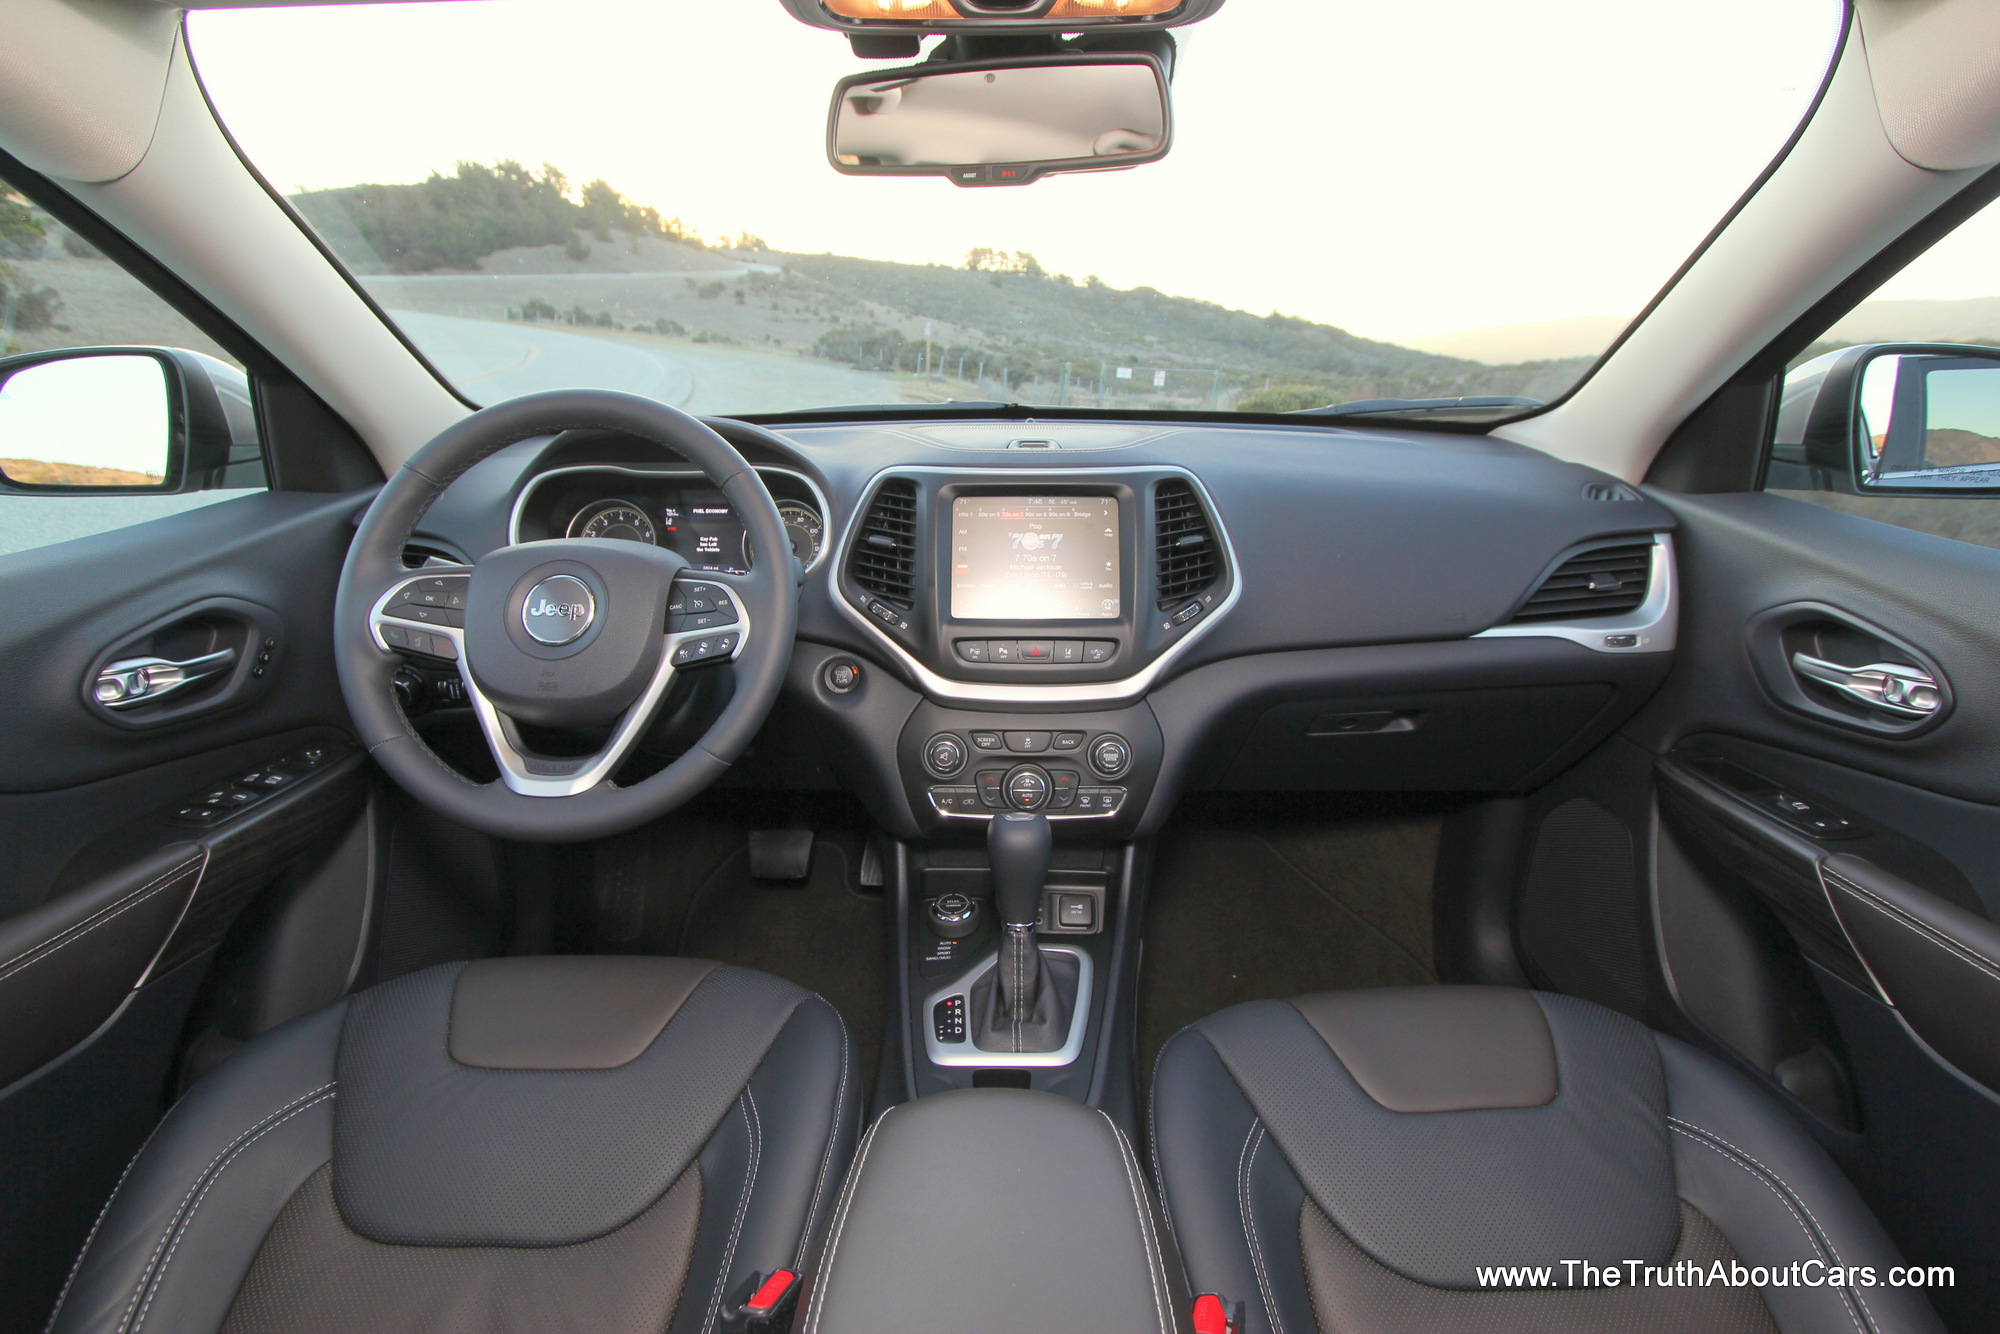 2014 Jeep Cherokee Limited Interior-004 - The Truth About Cars